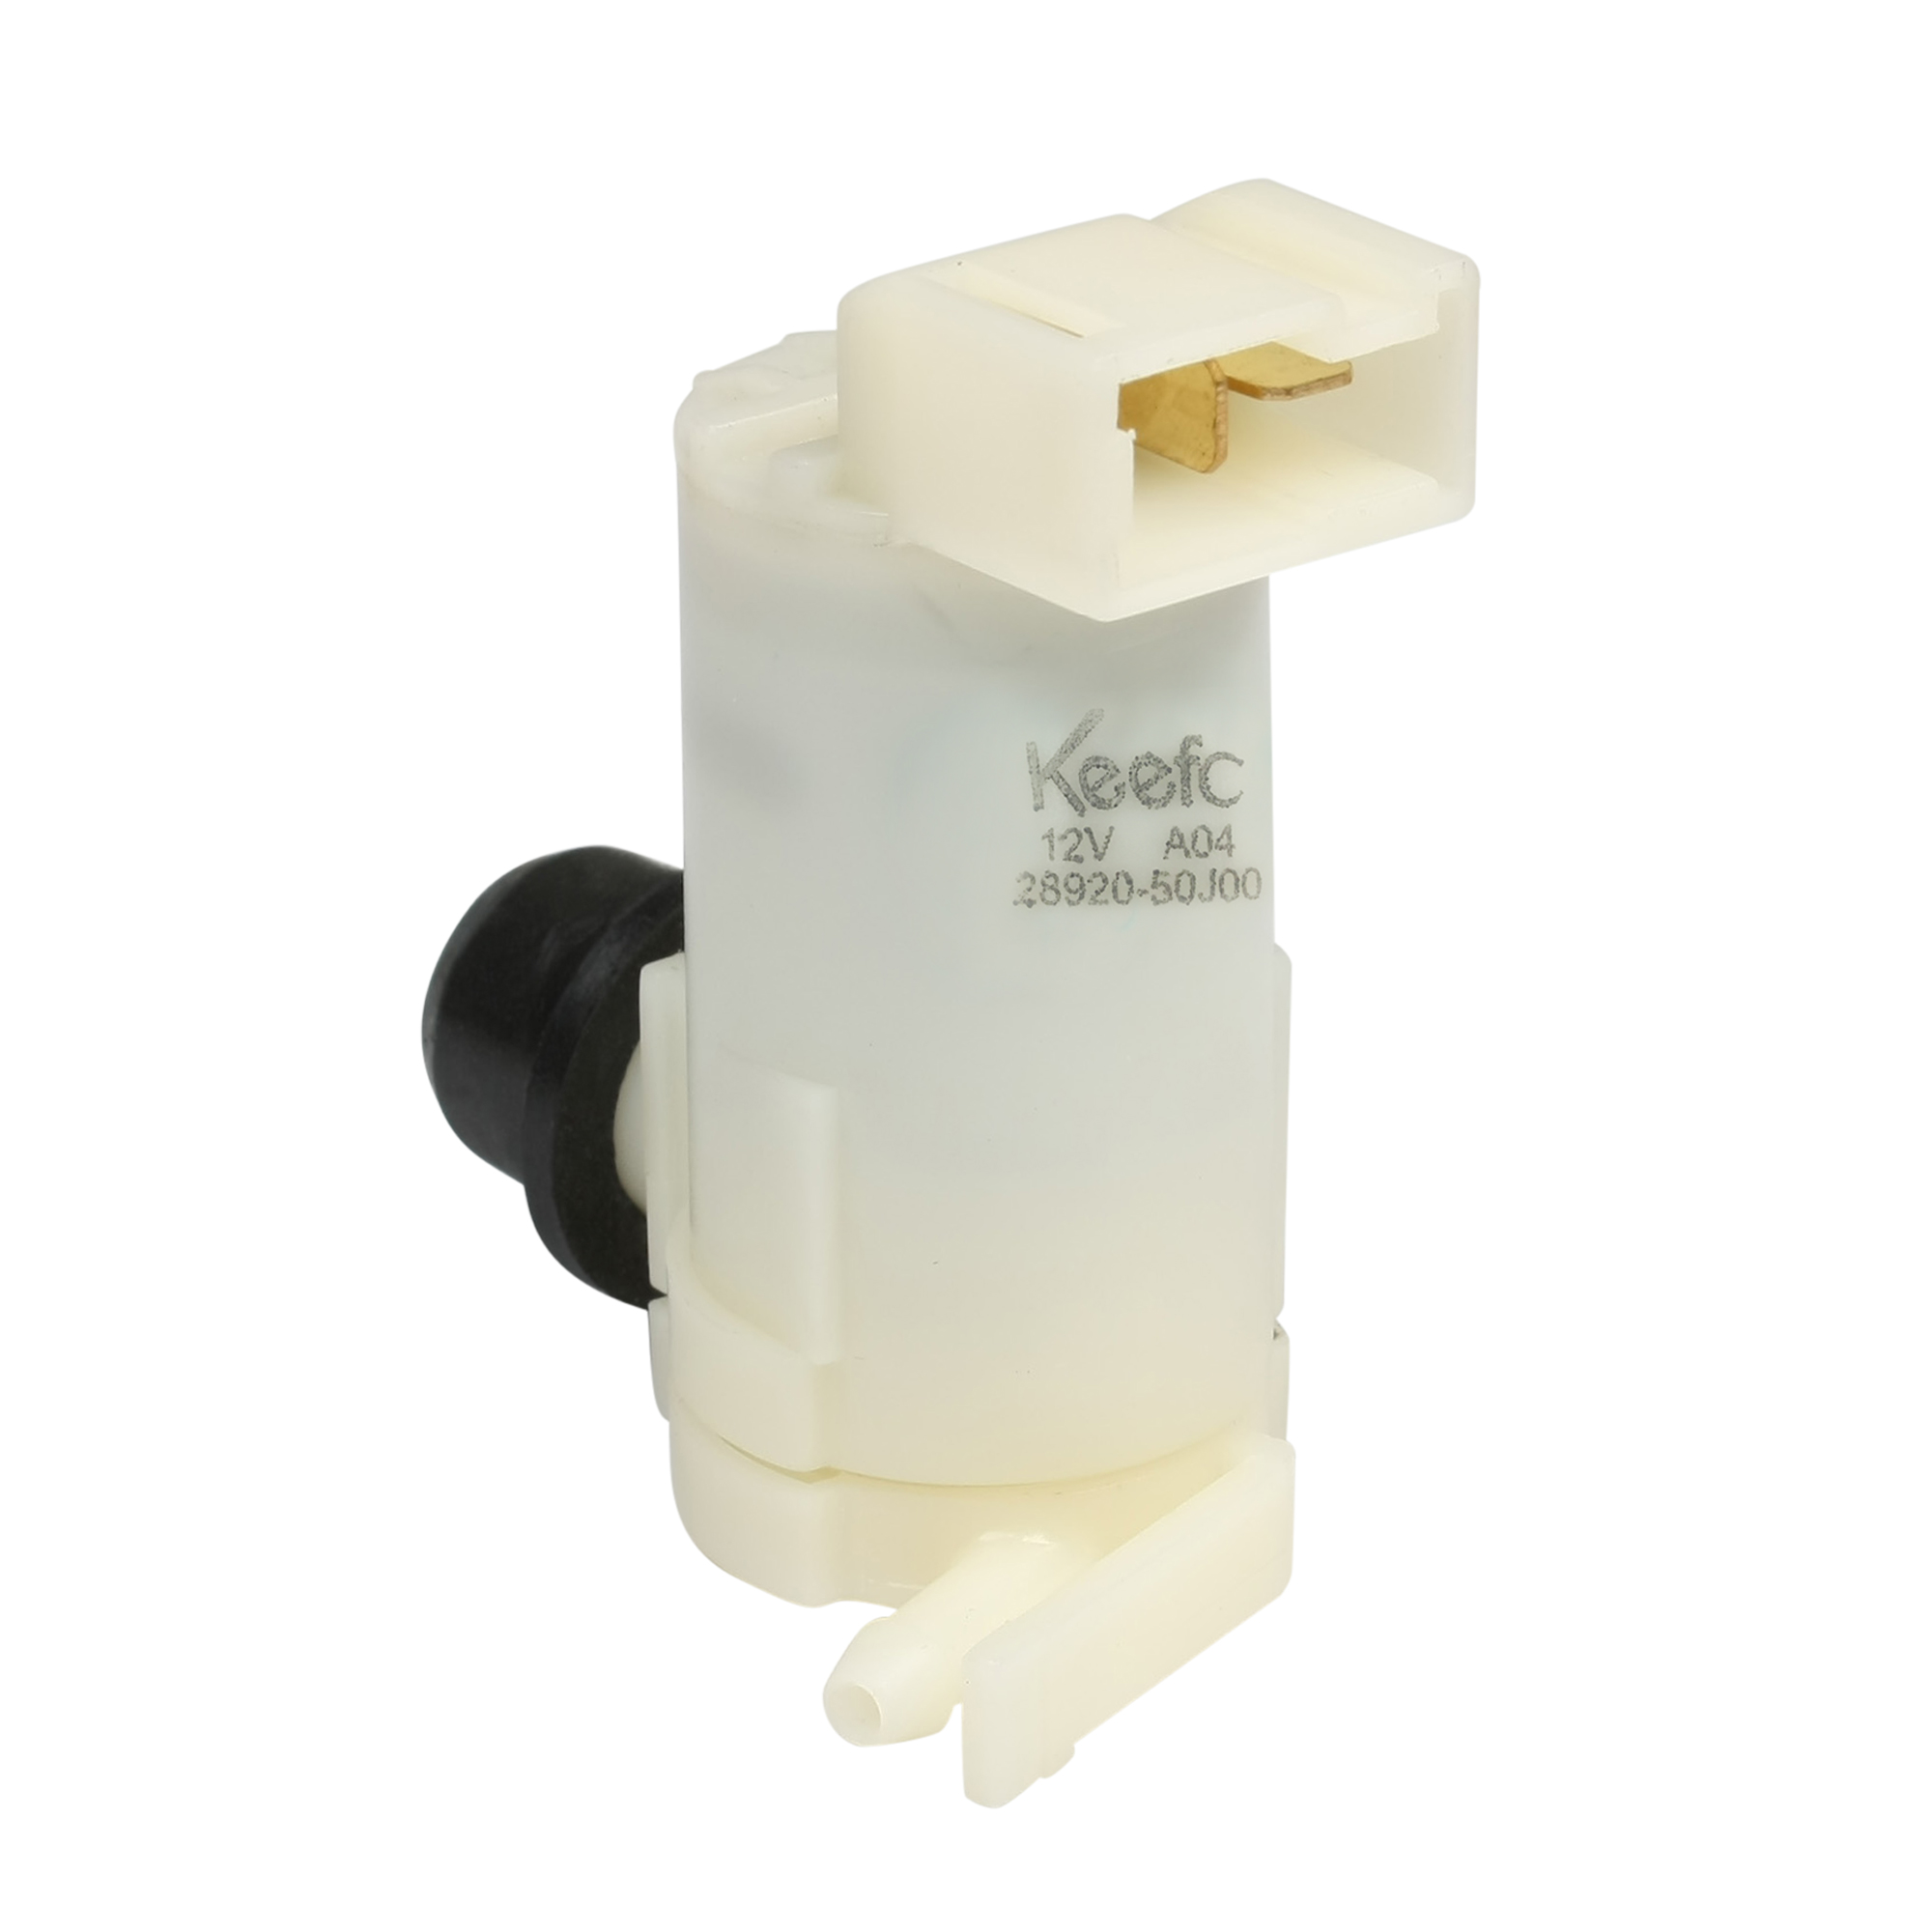 28920-50Y00 Automobile Car Windscreen Washer Pump Replacement Part